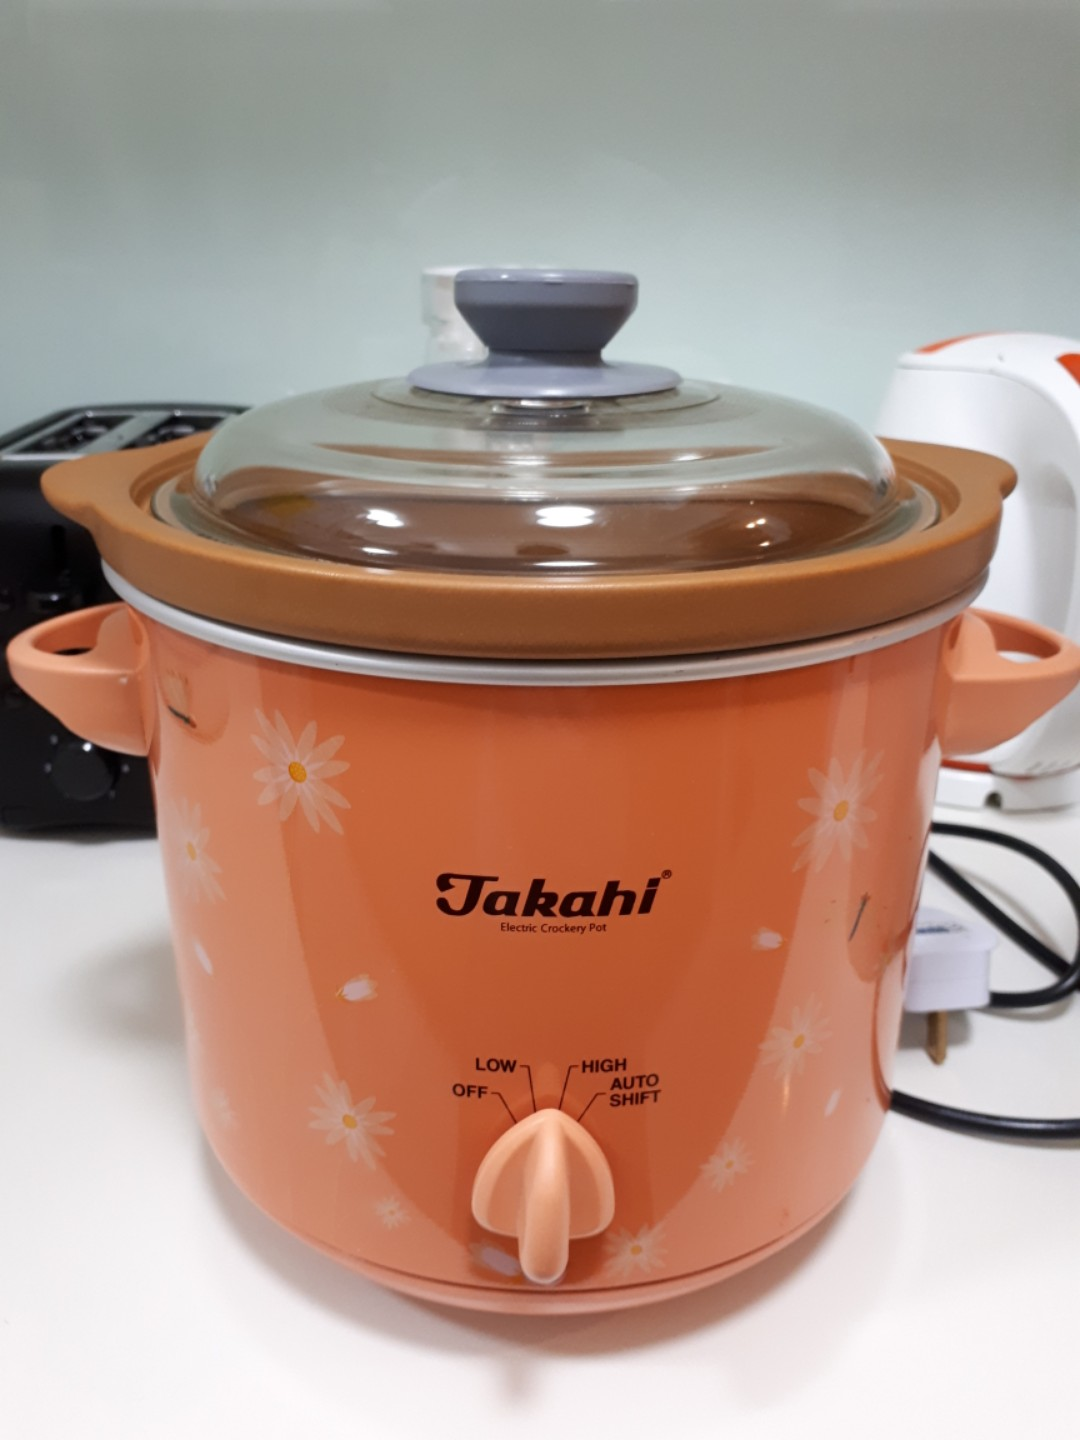 3.5l Takahi Slow cooker electric crockery pot + freebie, Home Appliances, Kitchenware on Carousell